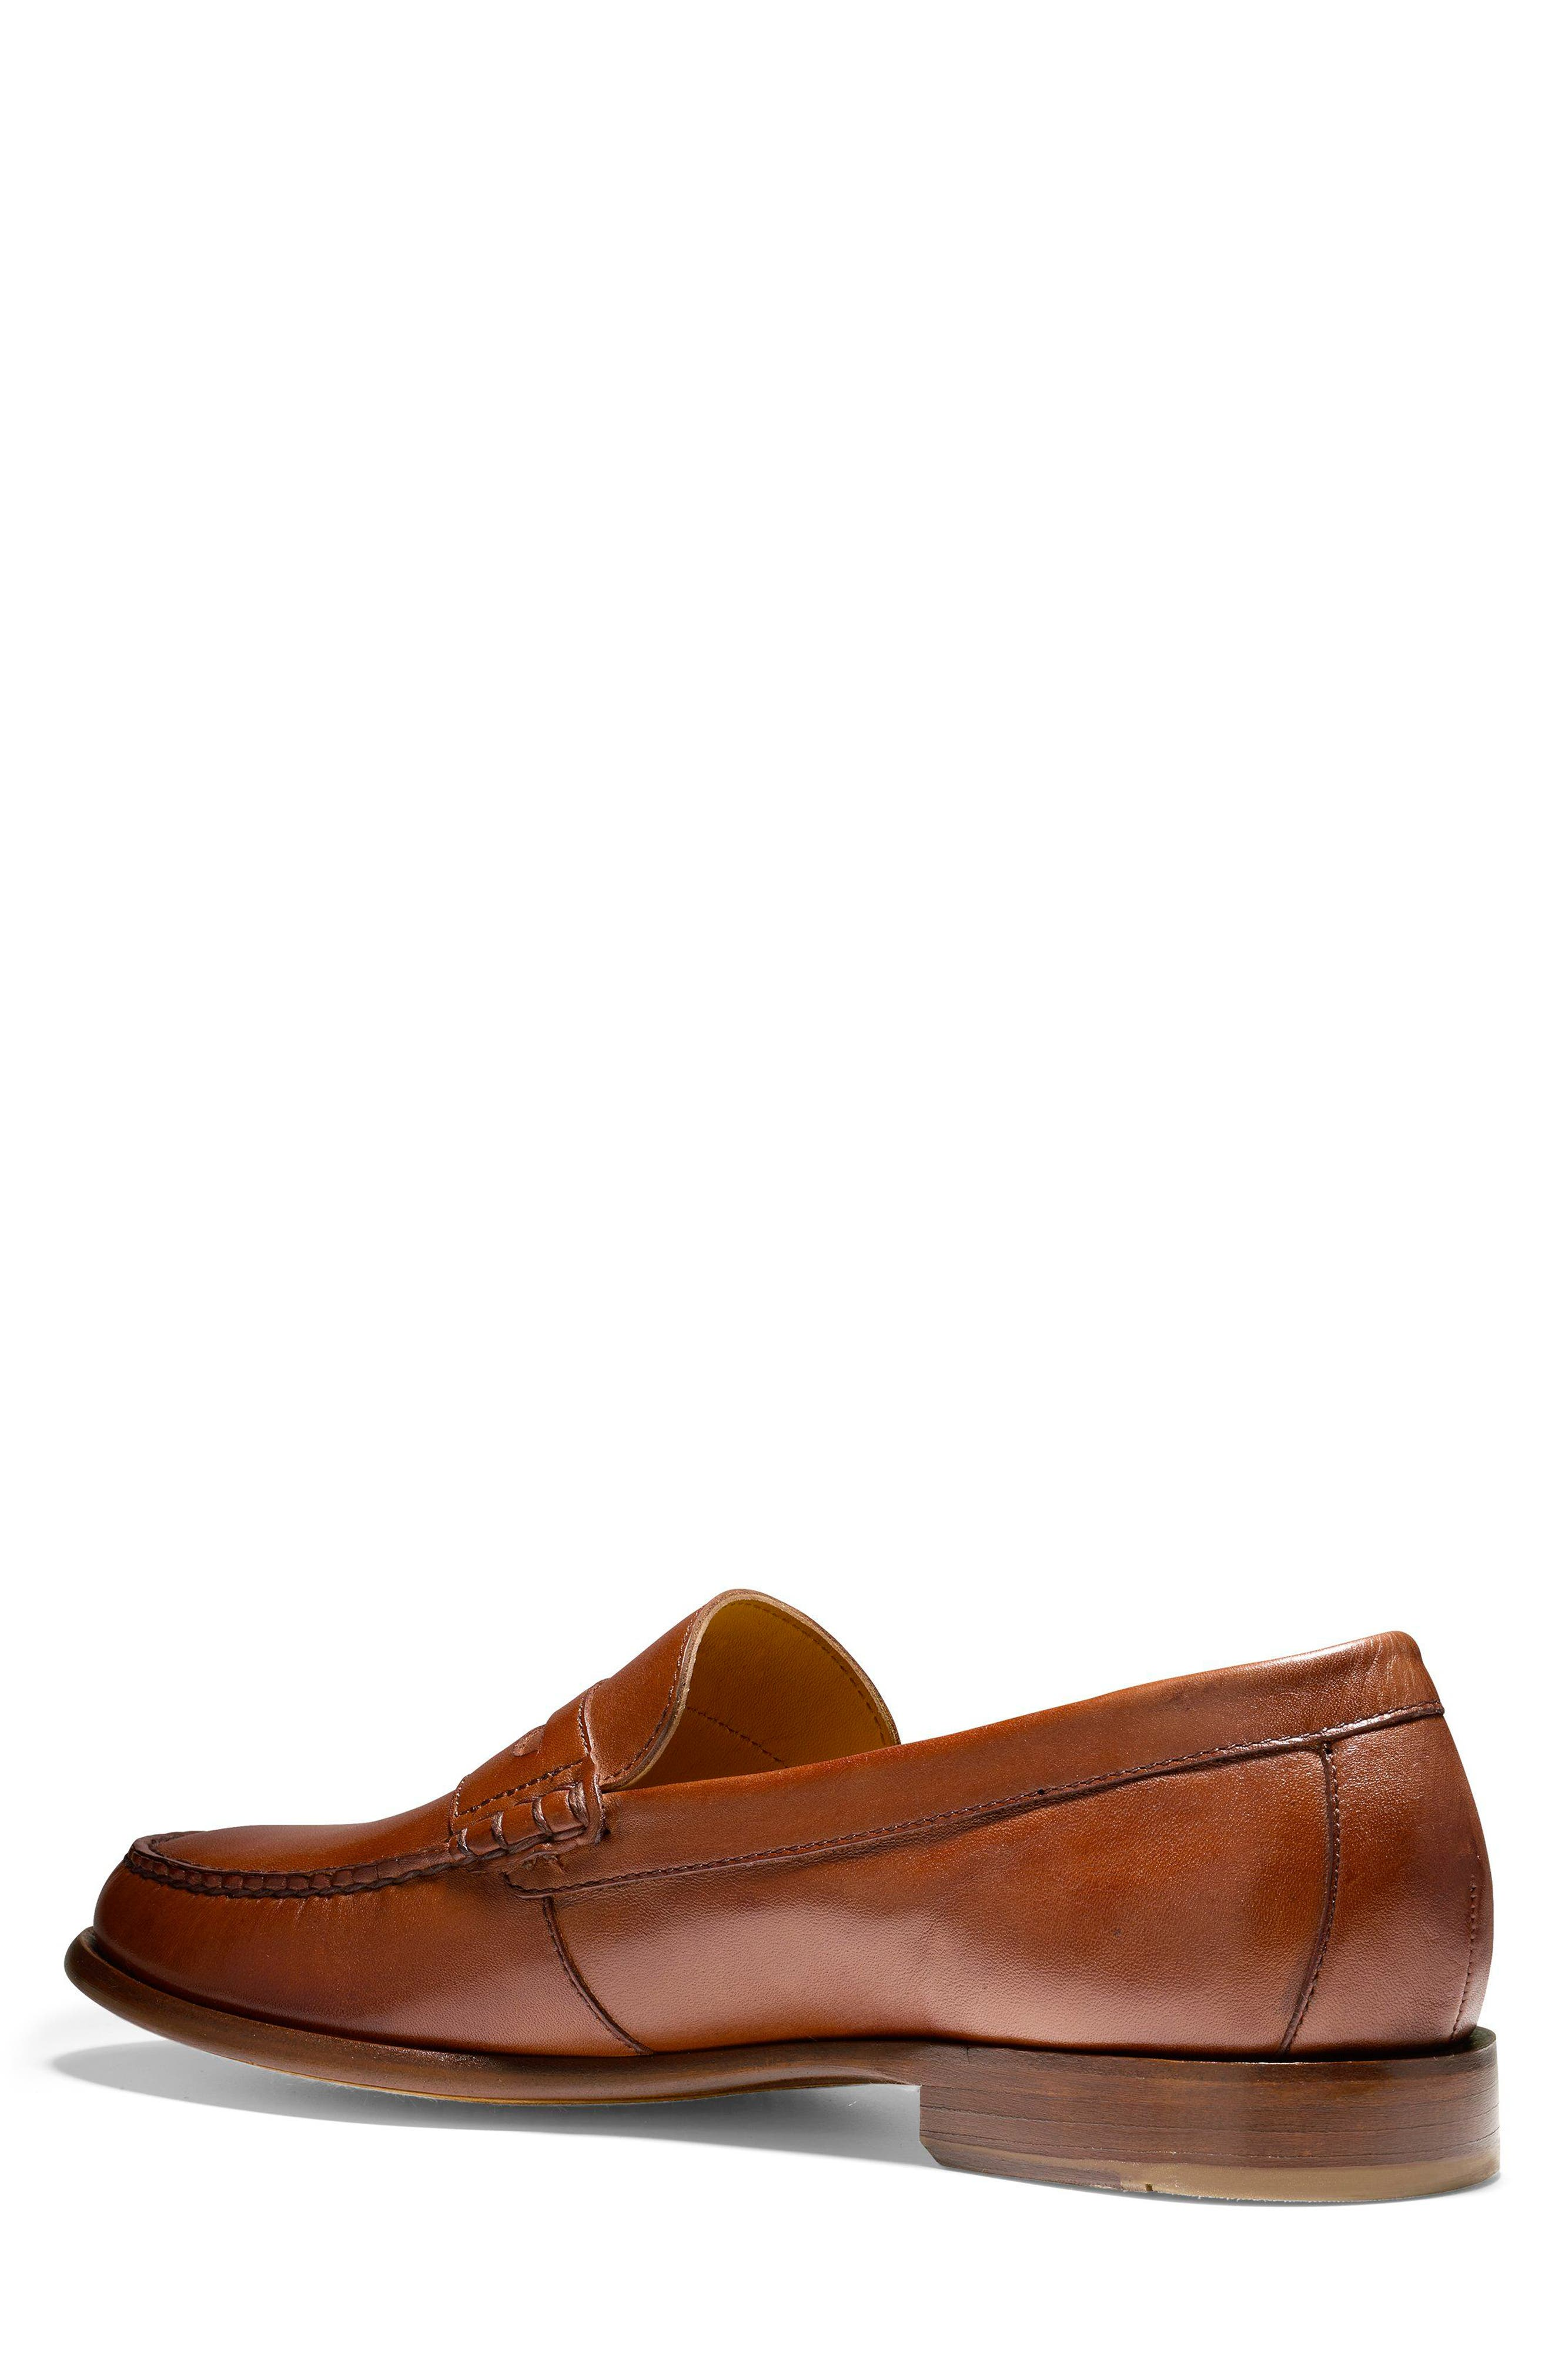 Pinch Penny Loafer,                             Alternate thumbnail 2, color,                             200